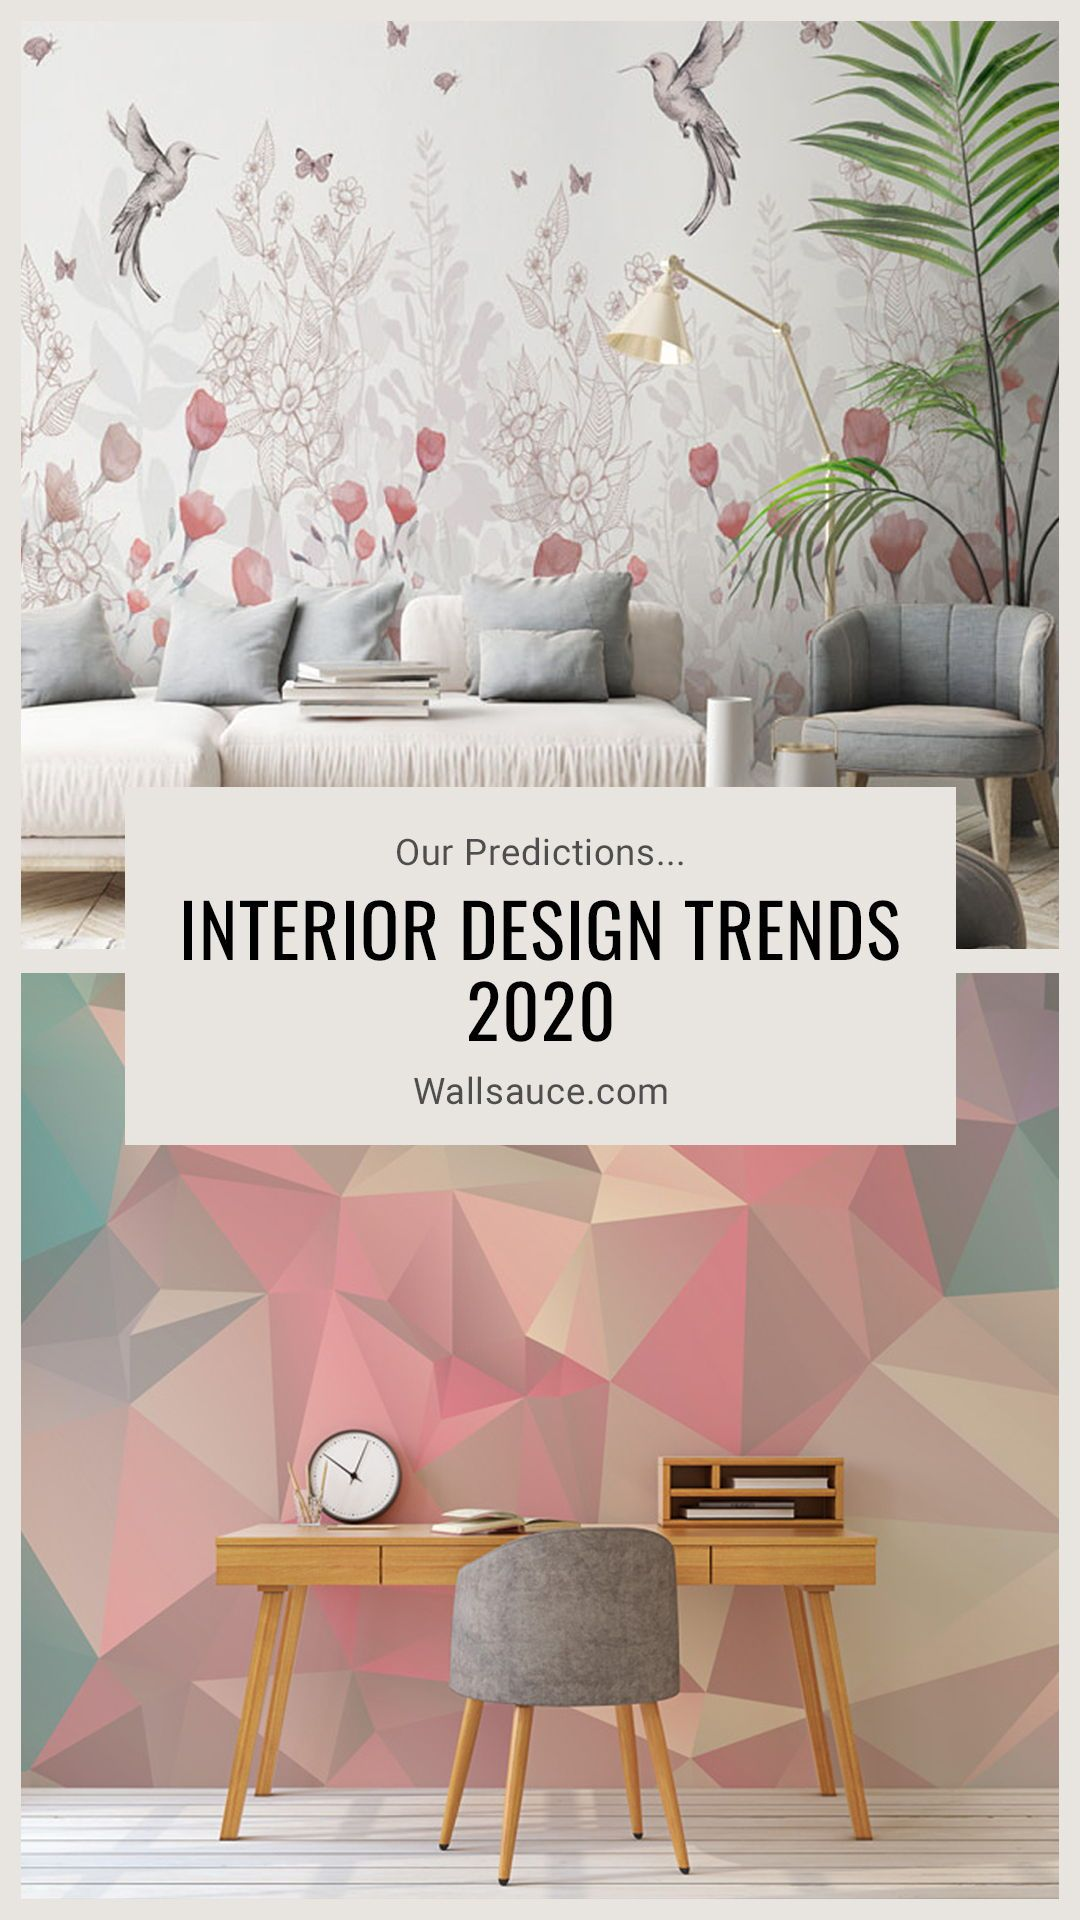 Interior Design Trends 2020 Our Predictions Wallsauce Ca Wall Decor Trends Trending Decor Wallpaper Trends